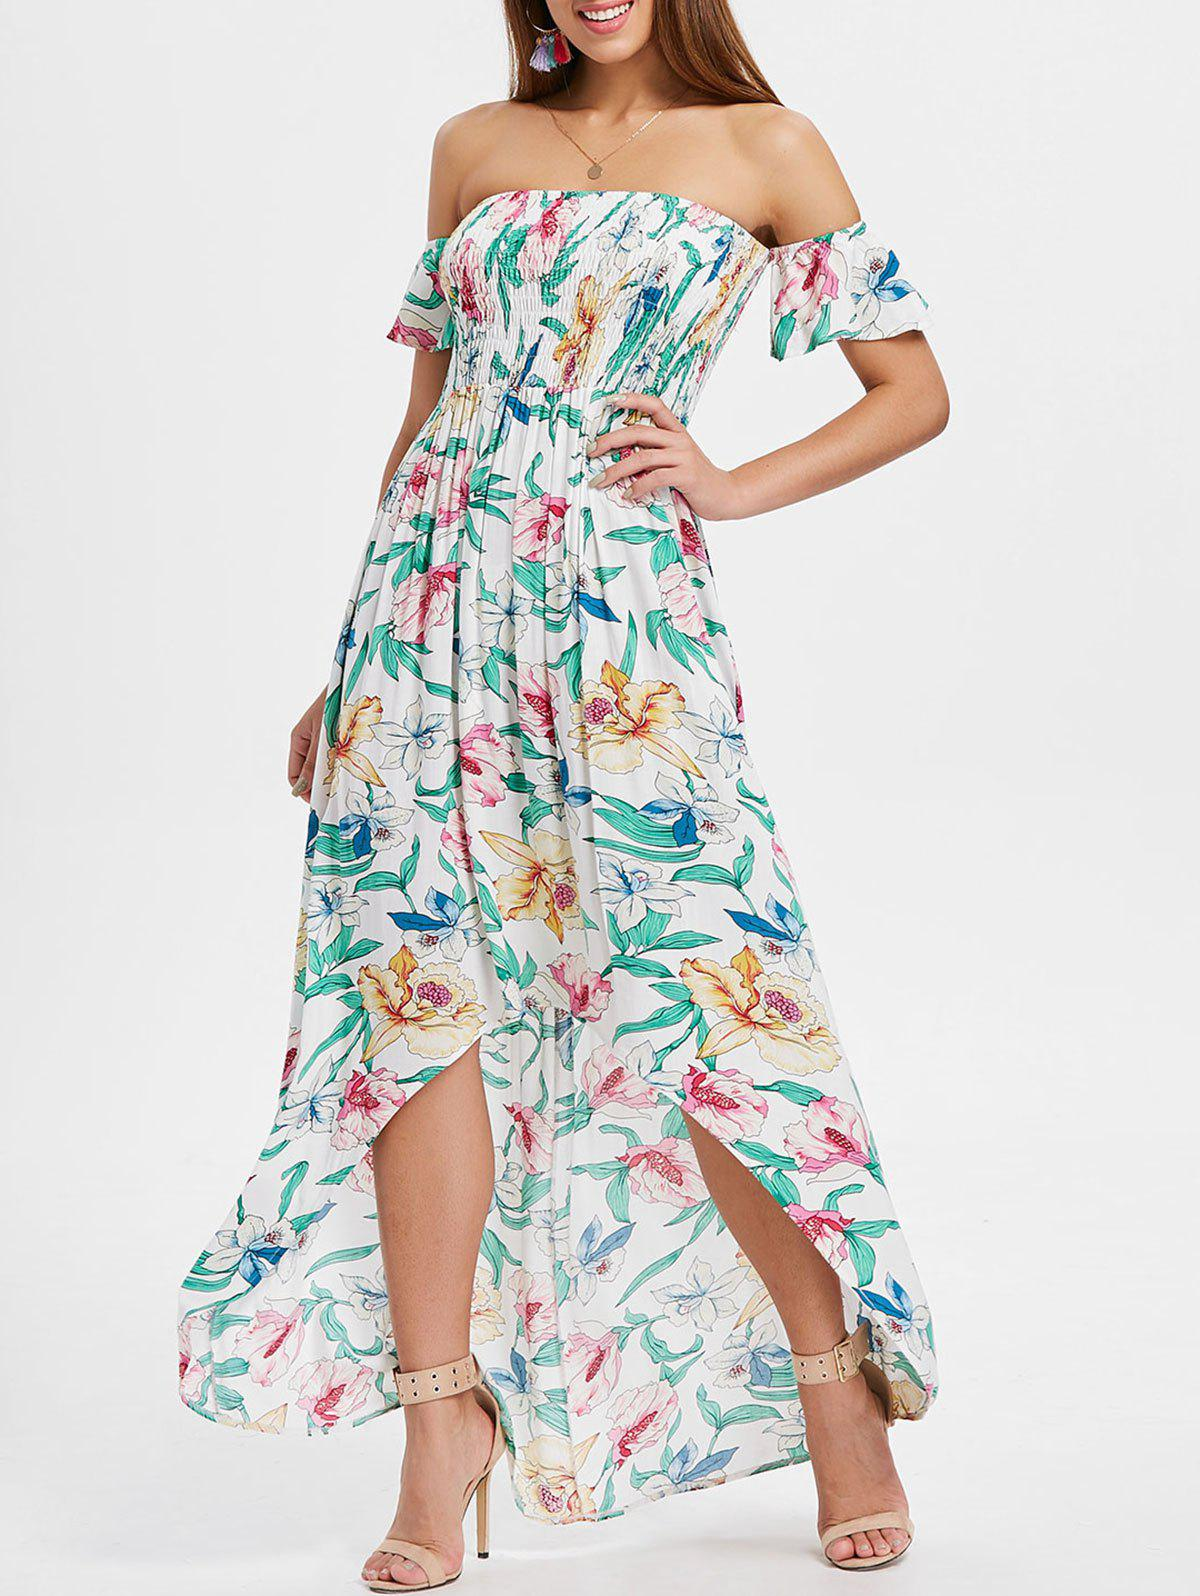 Flower Print Maxi Shirred Dress - multicolor L